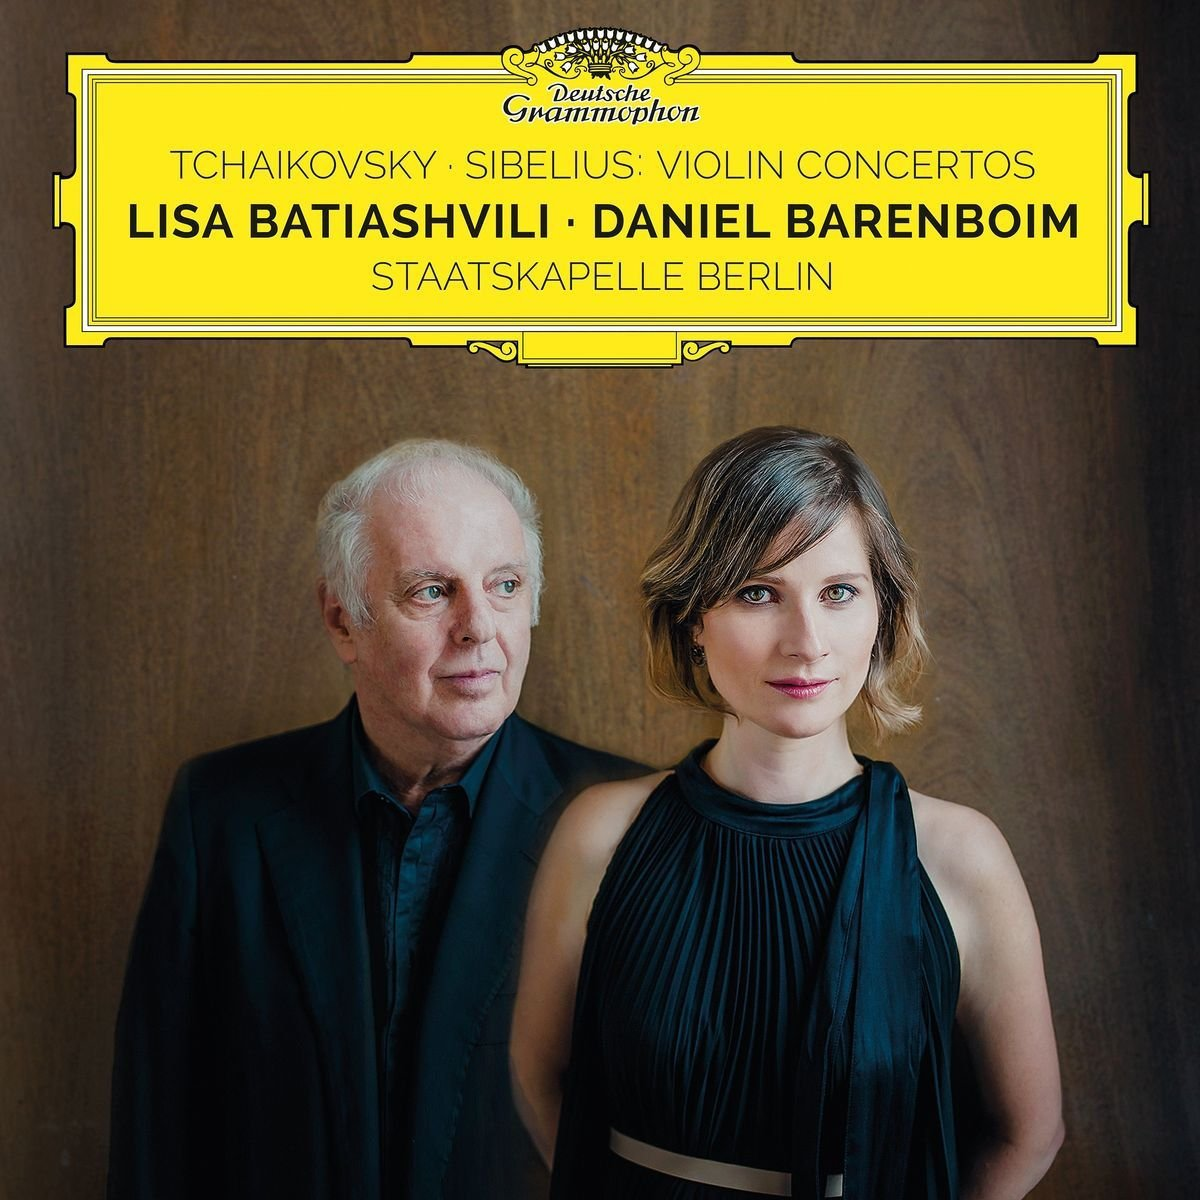 CD : Lisa Batiashvili - Violin Concerto / Sibelius: Violin Concerto (CD)